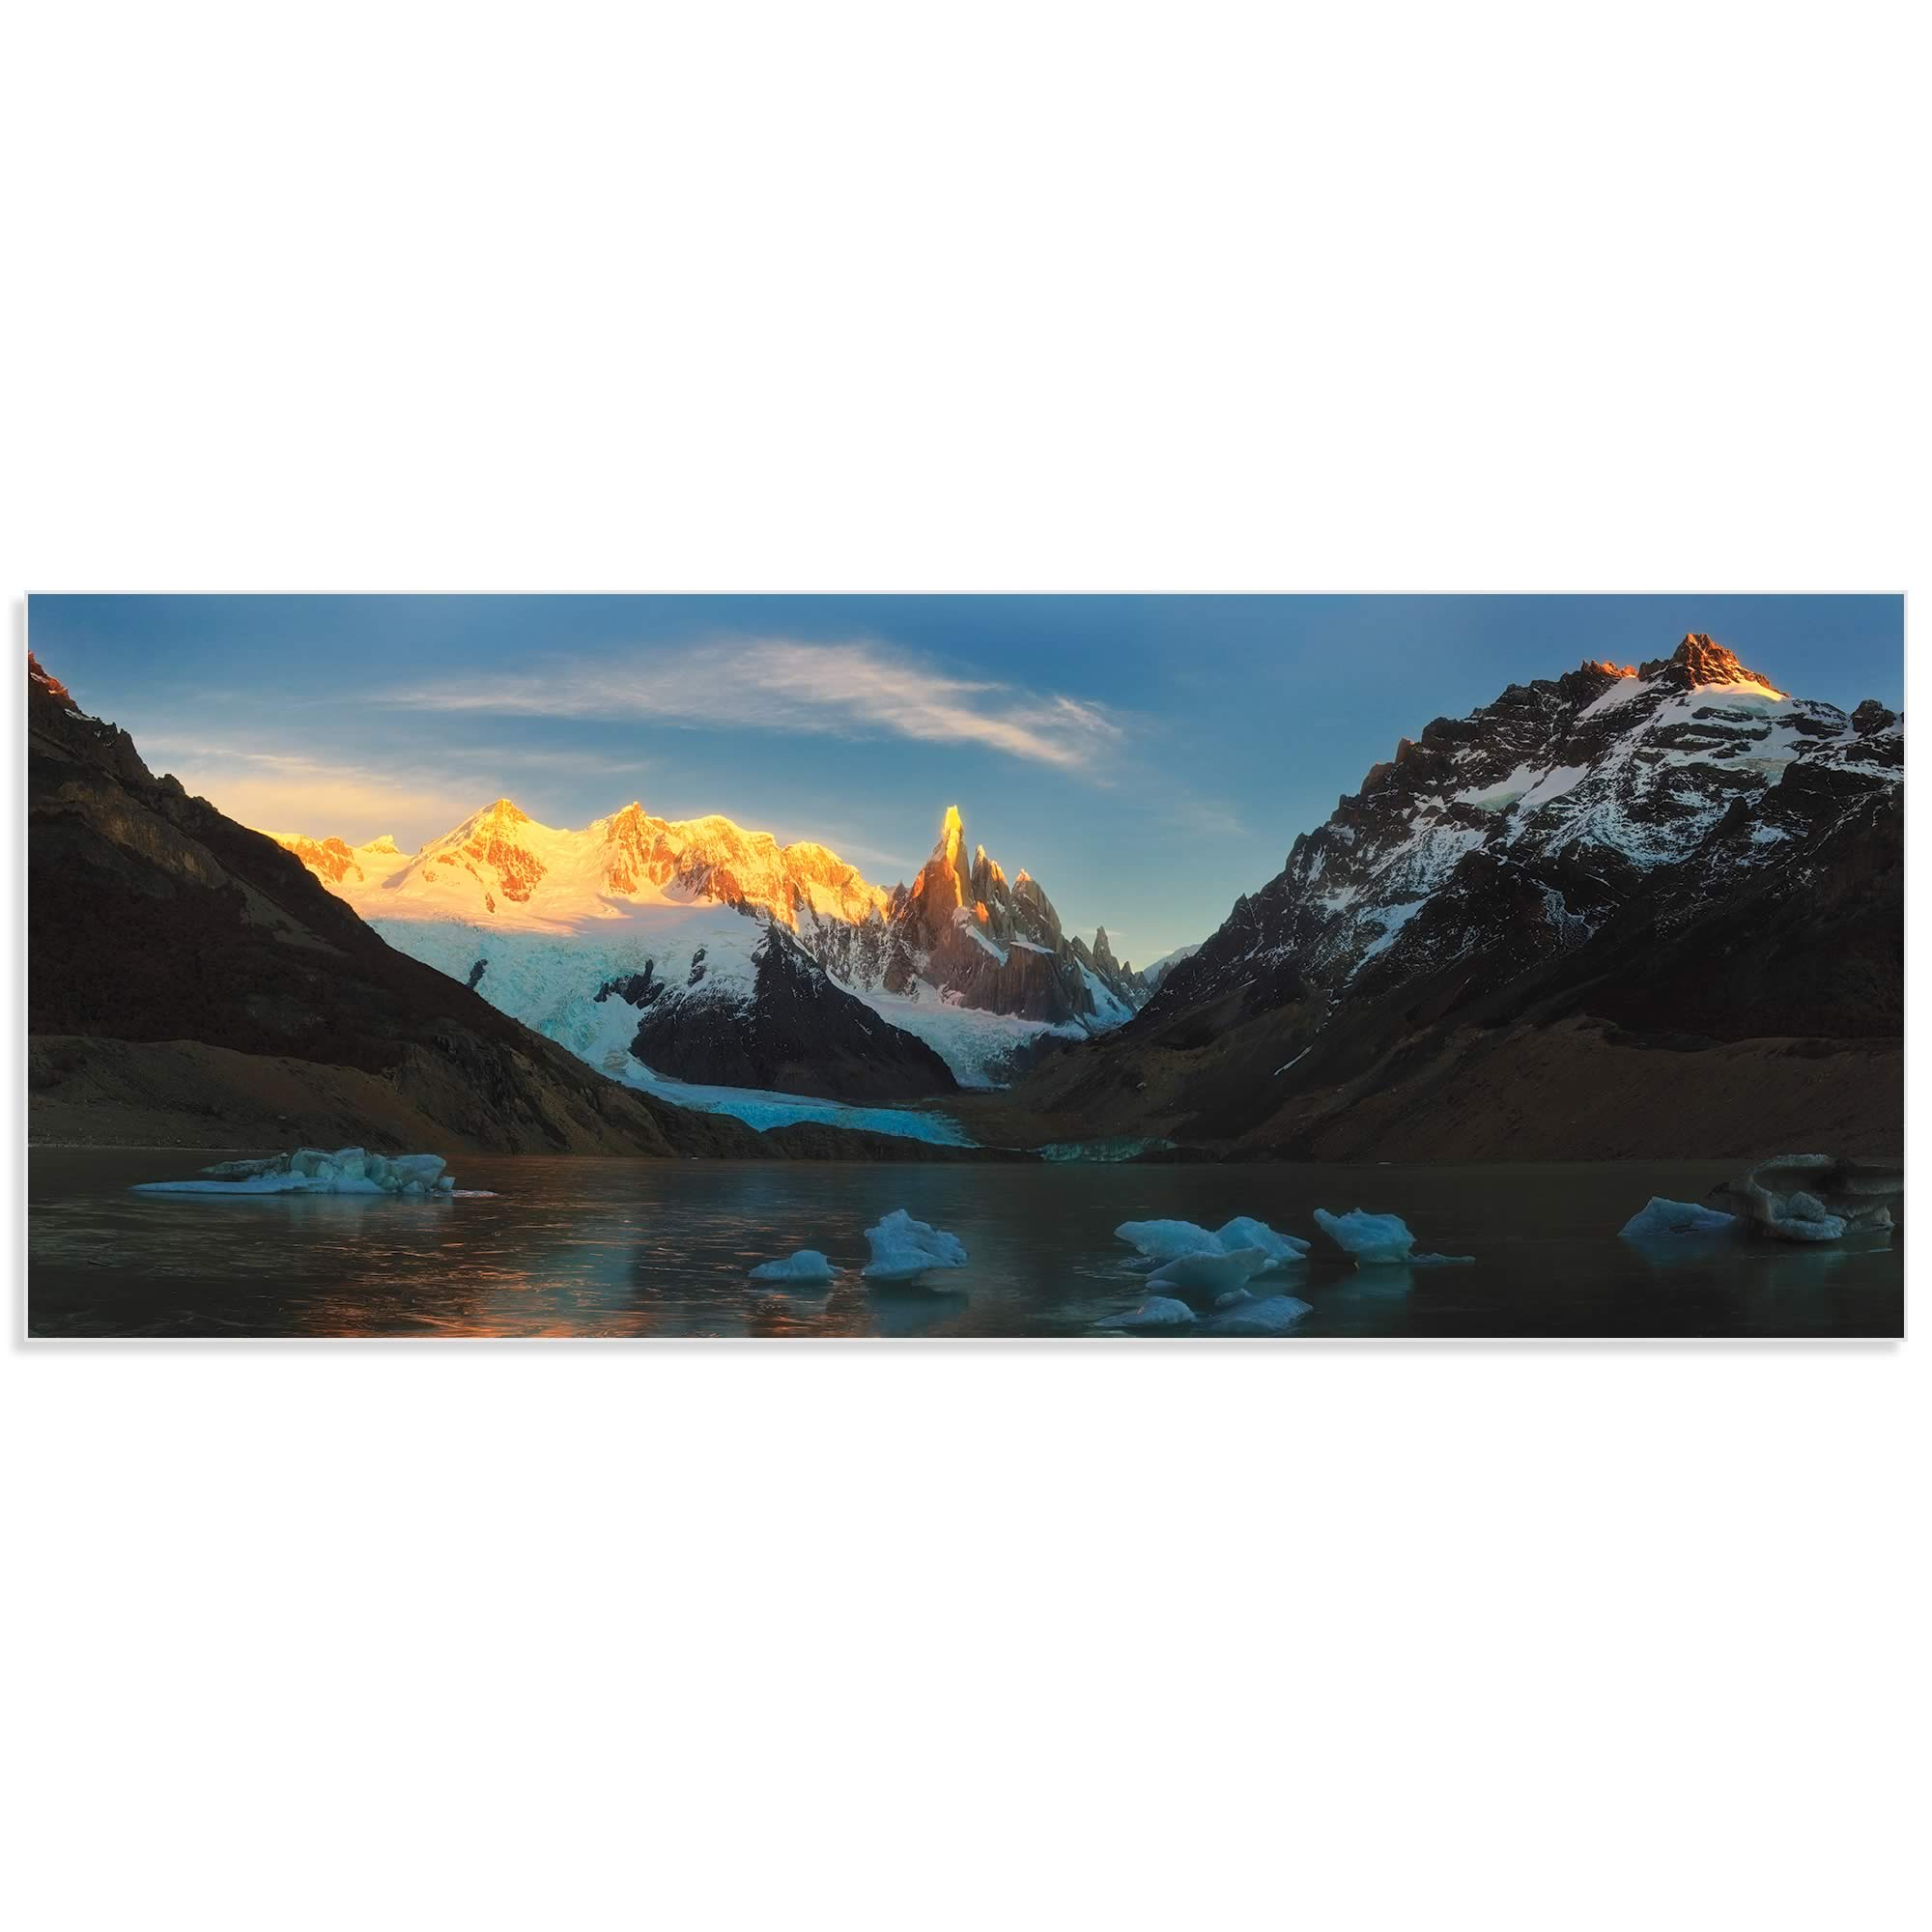 Morning Light at Cerro Torre by Yan Zhang - Mountain Photography on Metal or Acrylic - Alternate View 2